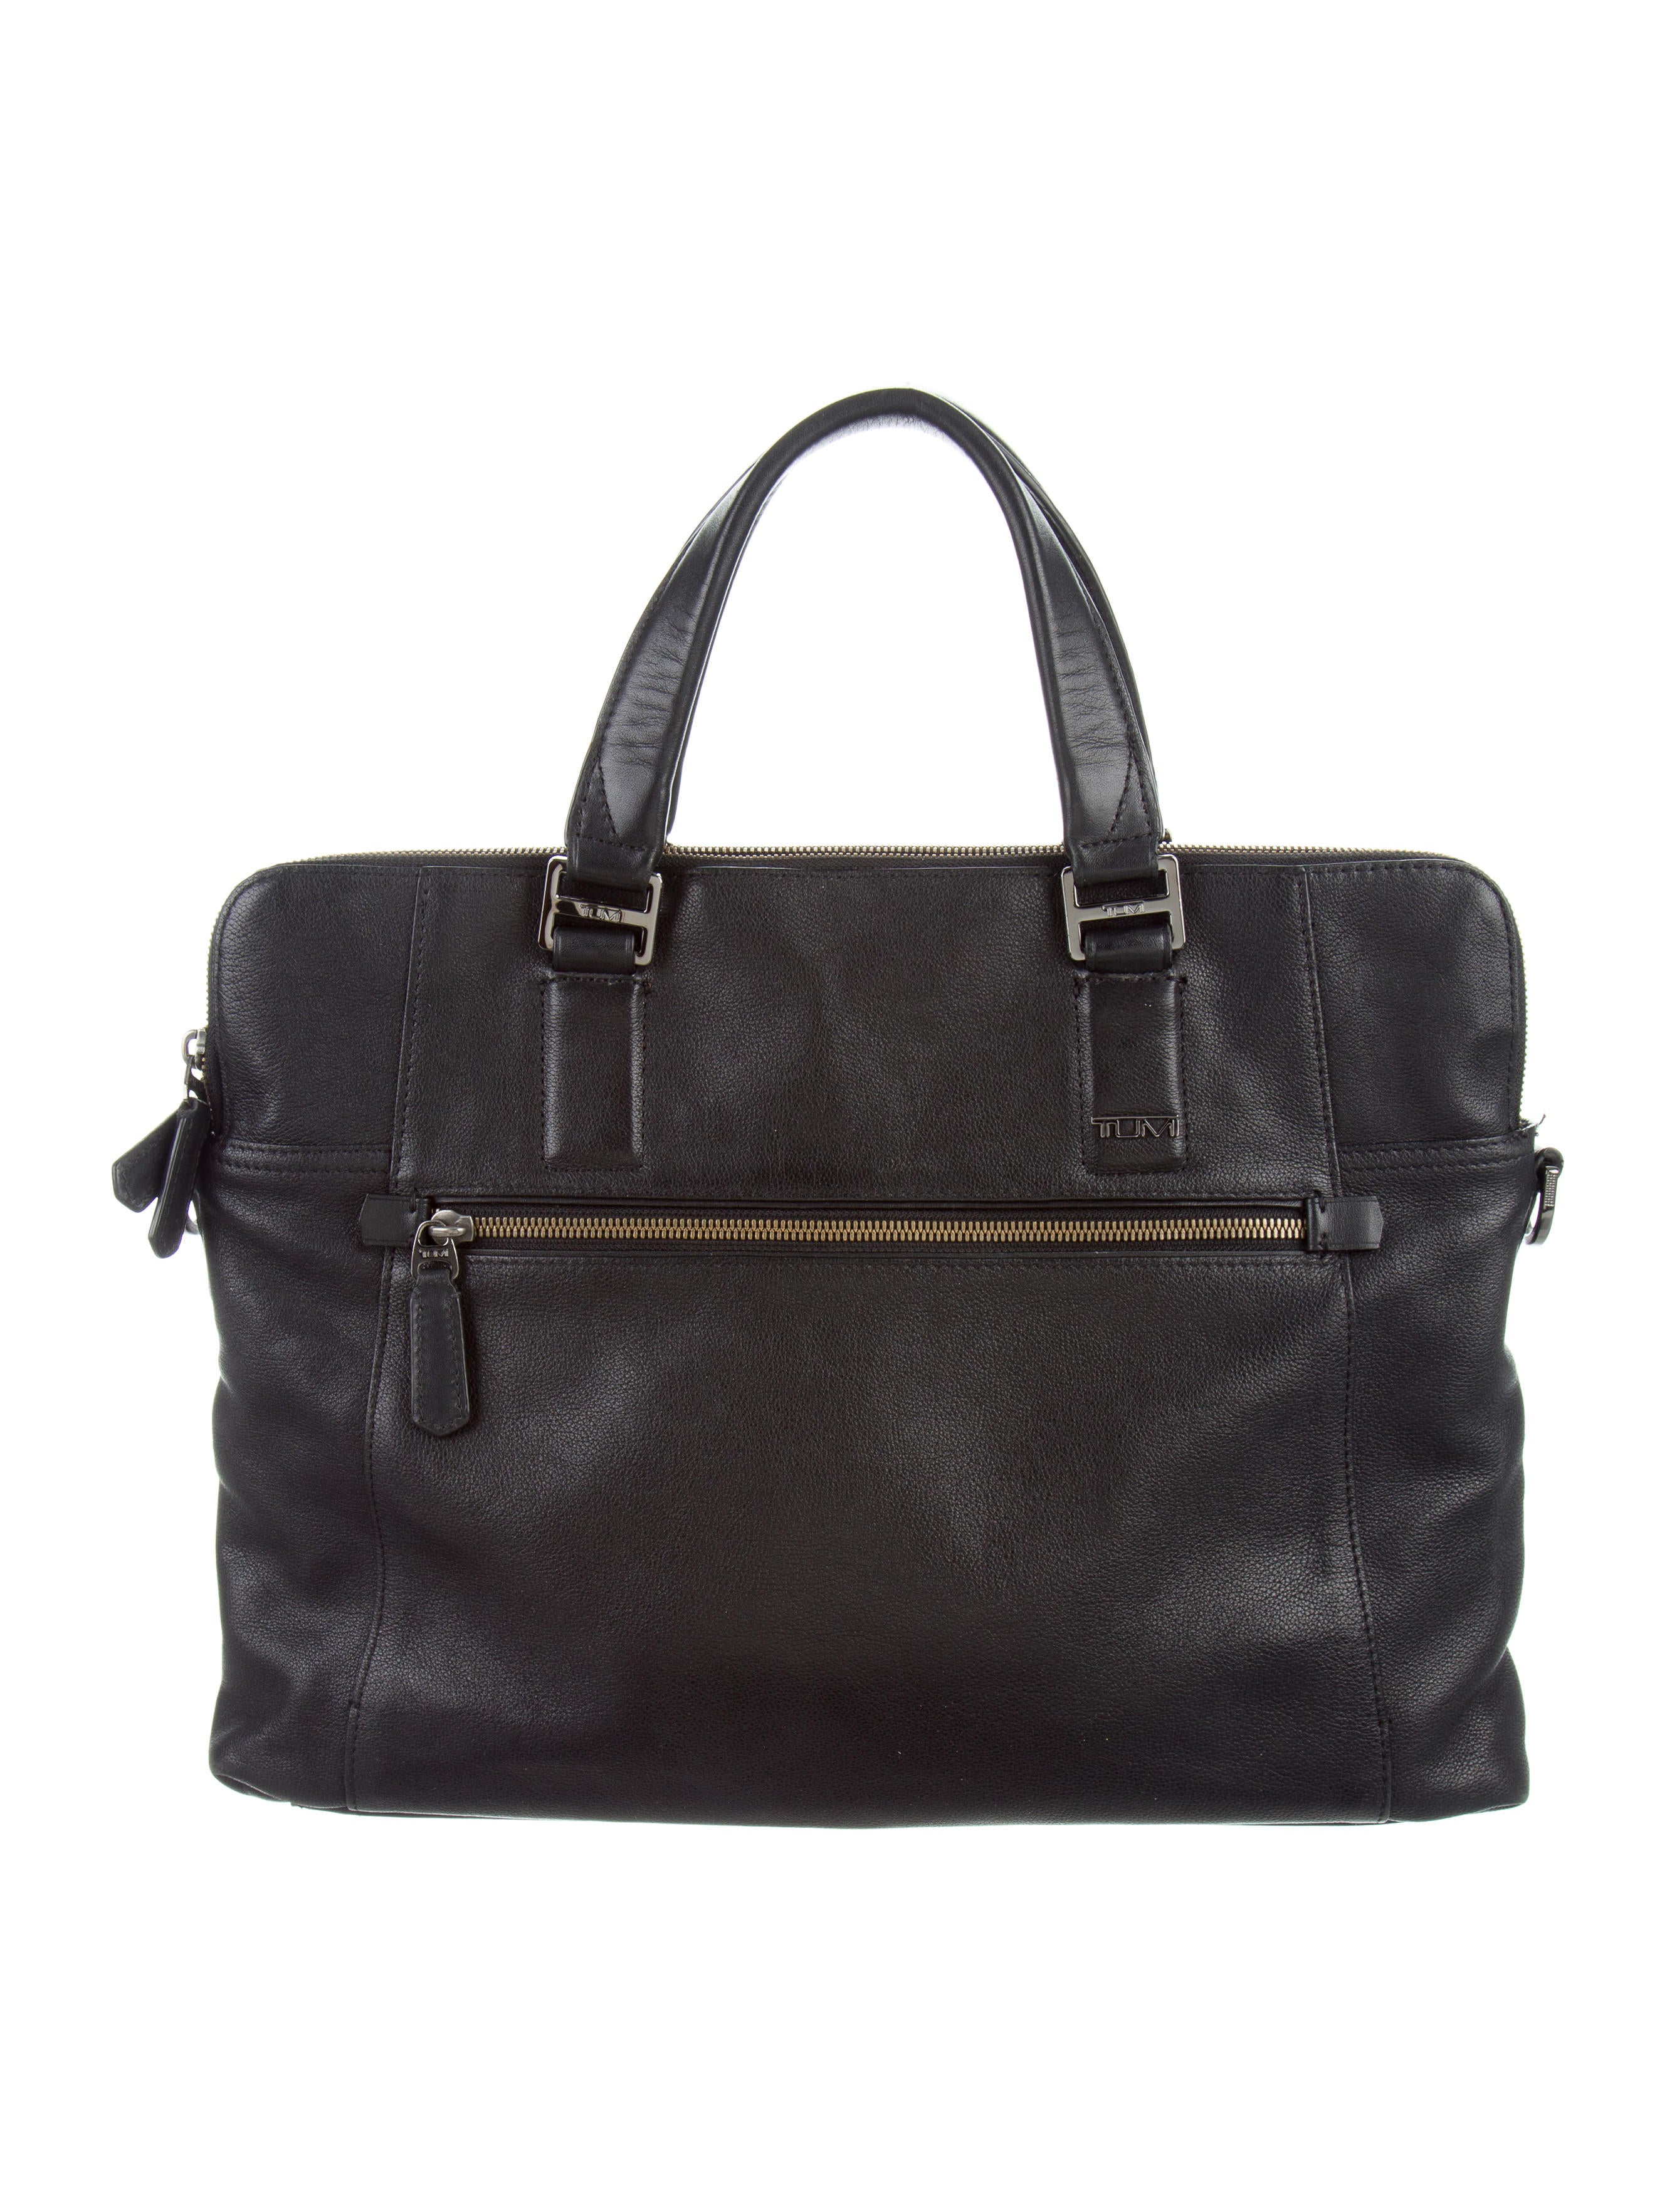 Tumi Grained Leather Briefcase Bags TMI21626 The  : TMI216261enlarged from www.therealreal.com size 2675 x 3529 jpeg 739kB